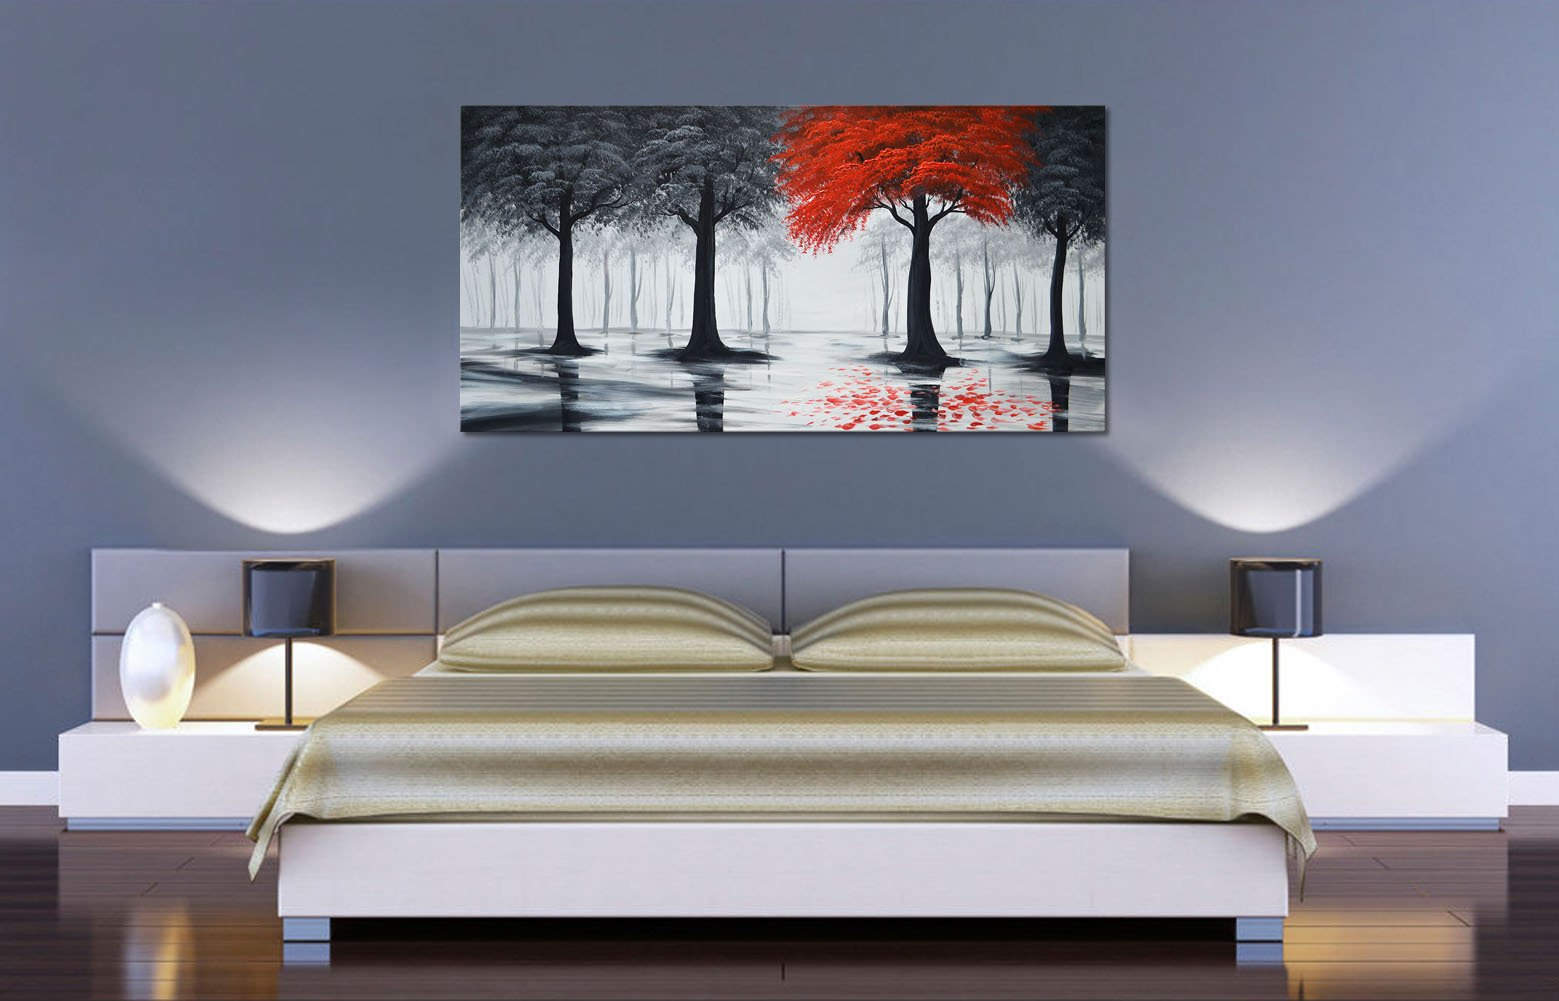 Everfun Art Hand Painted Landscape Oil Painting On Canvas Modern Contemporary Black and Red Forest Wall Art Stretched Abstract Tree Artwork for Living Room Bedroom Framed Ready to Hang ( 56 x 28 inch)